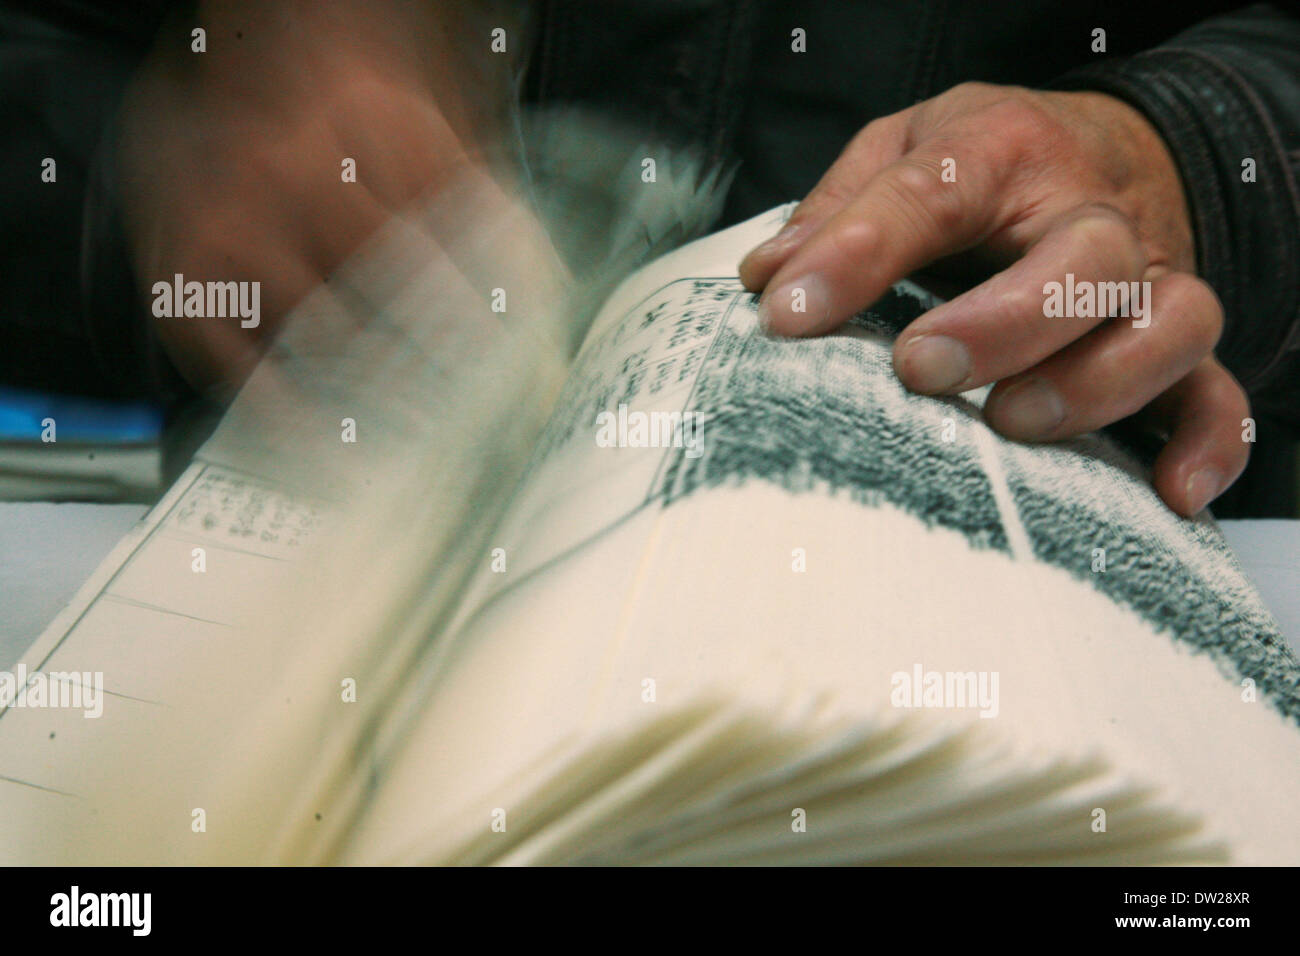 Yangzhou, China's Jiangsu Province. 25th Feb, 2014. A worker counts pages at the Guangling Ancient Books Printing Stock Photo